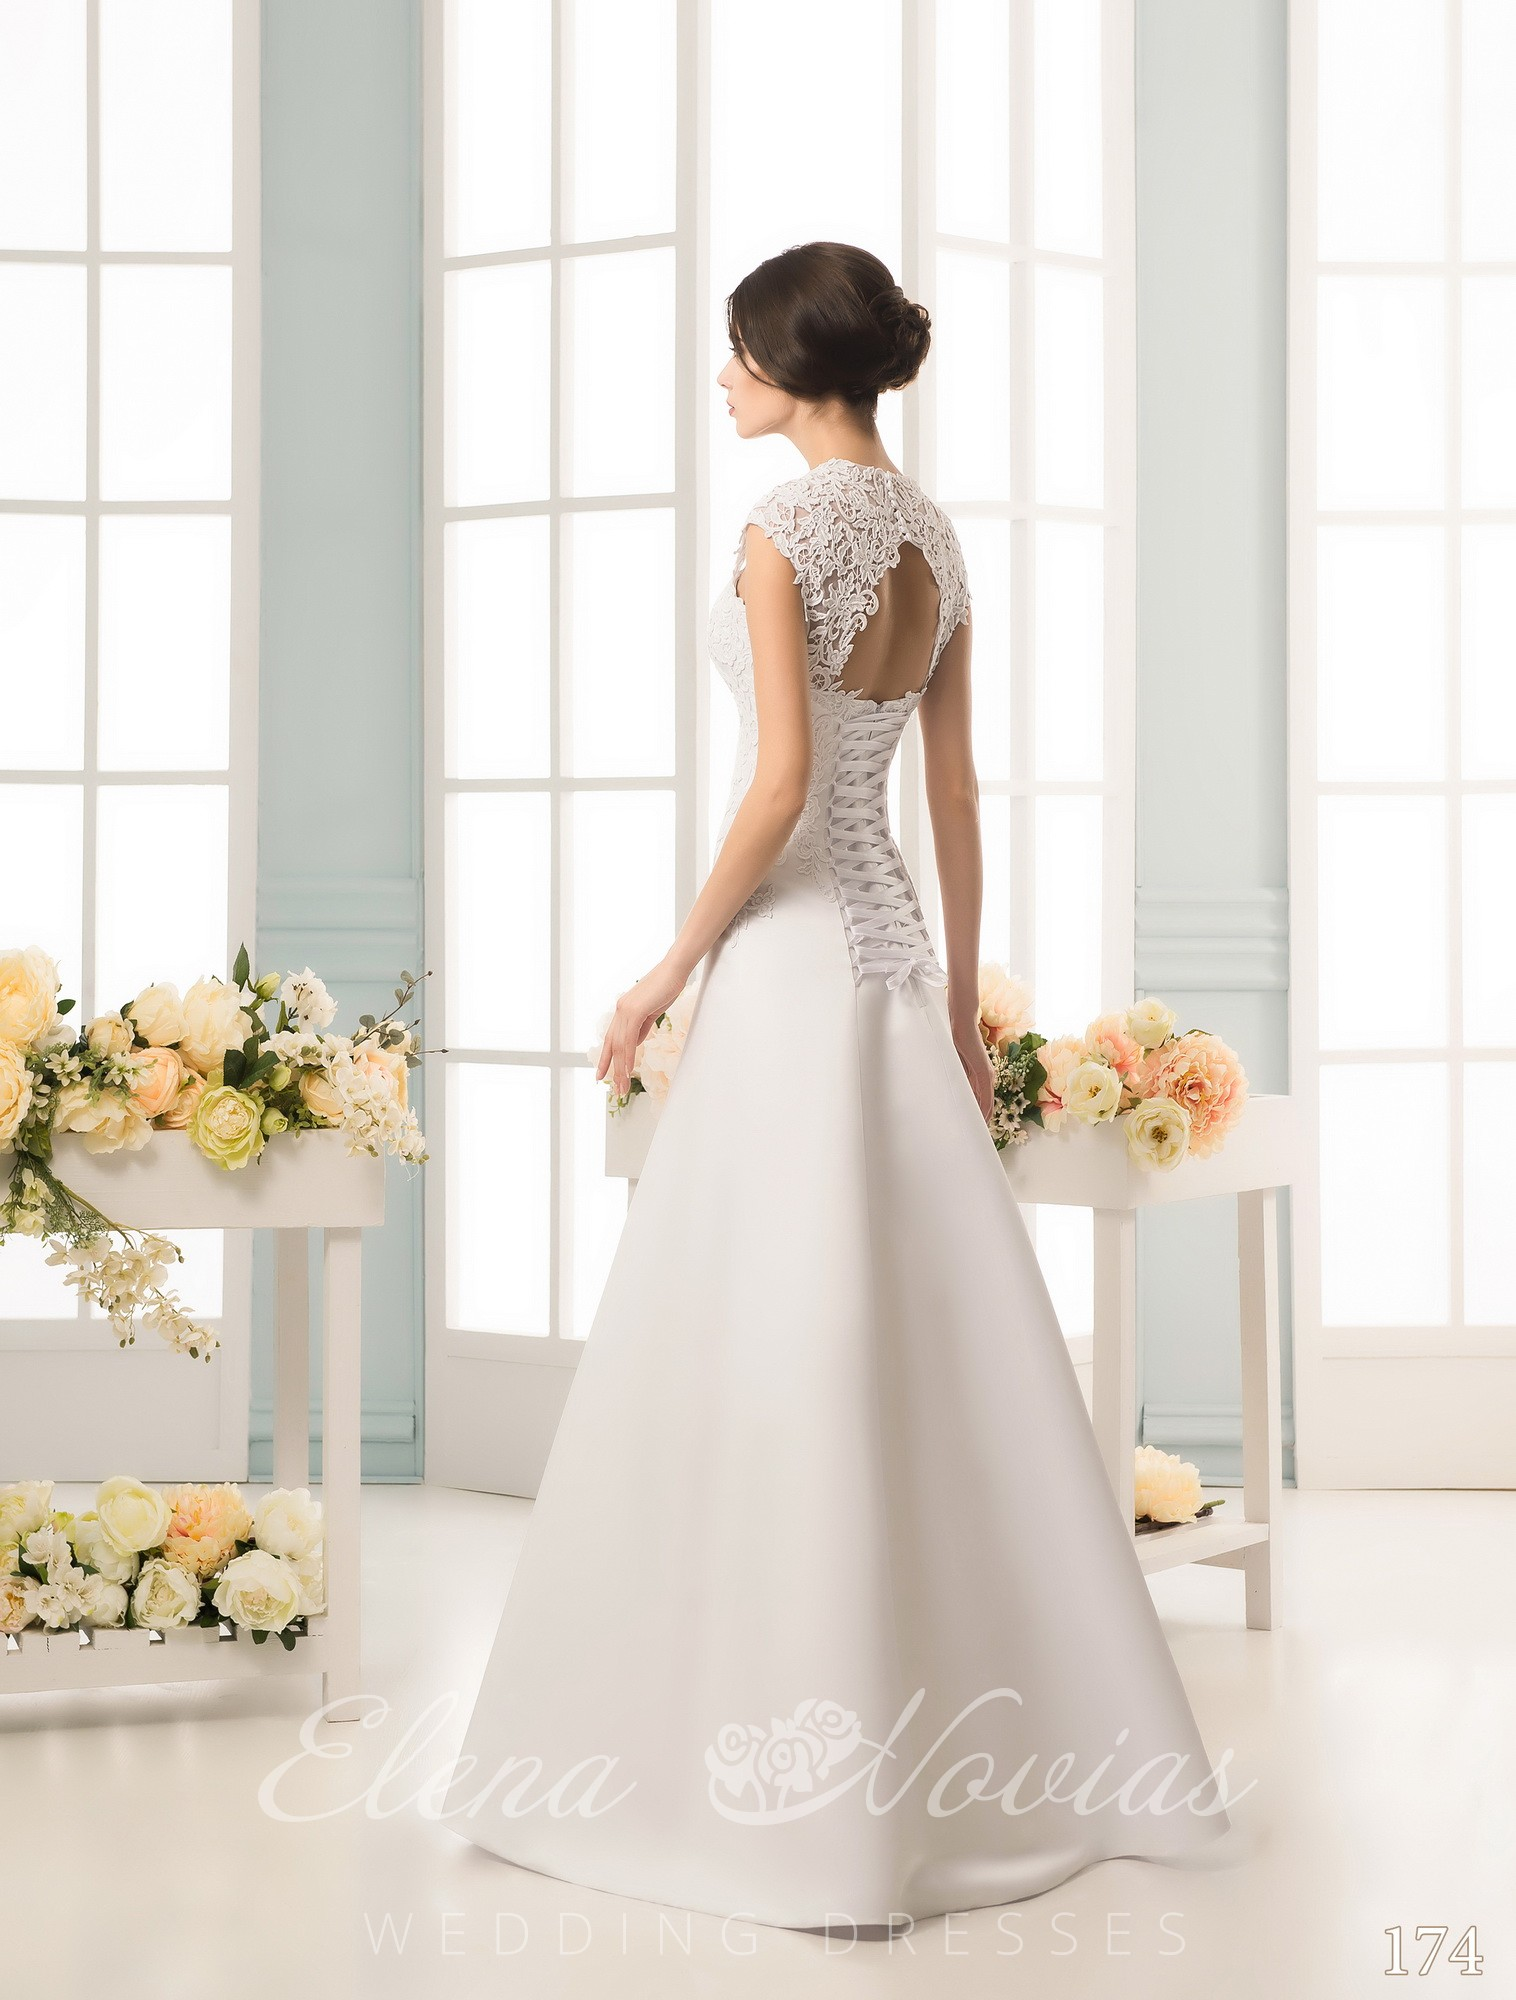 Wedding dress wholesale 174